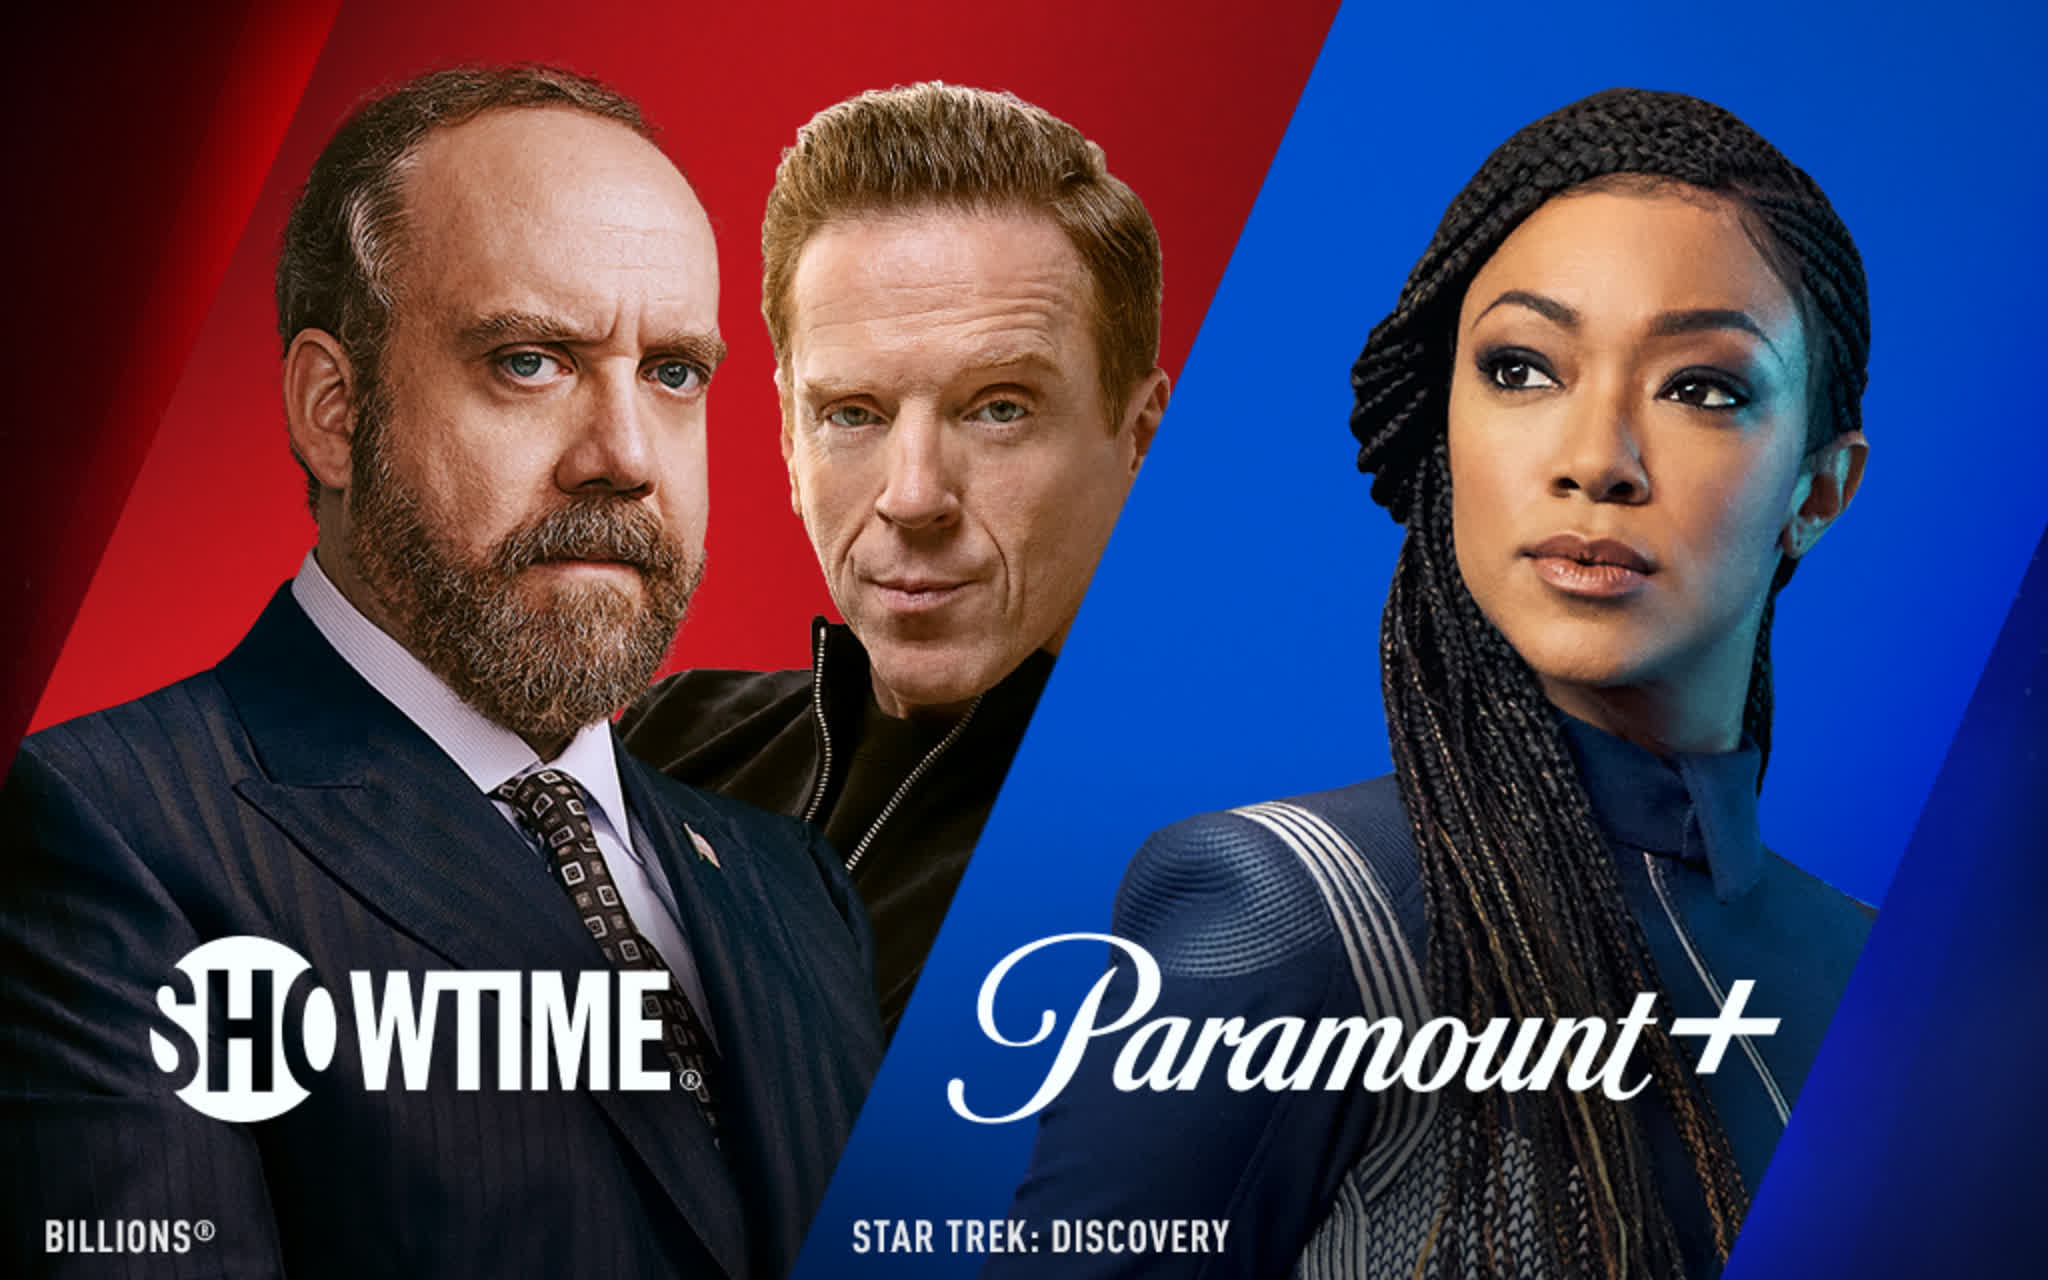 ViacomCBS' new bundle pairs Paramount+ with Showtime starting at $9.99 a month